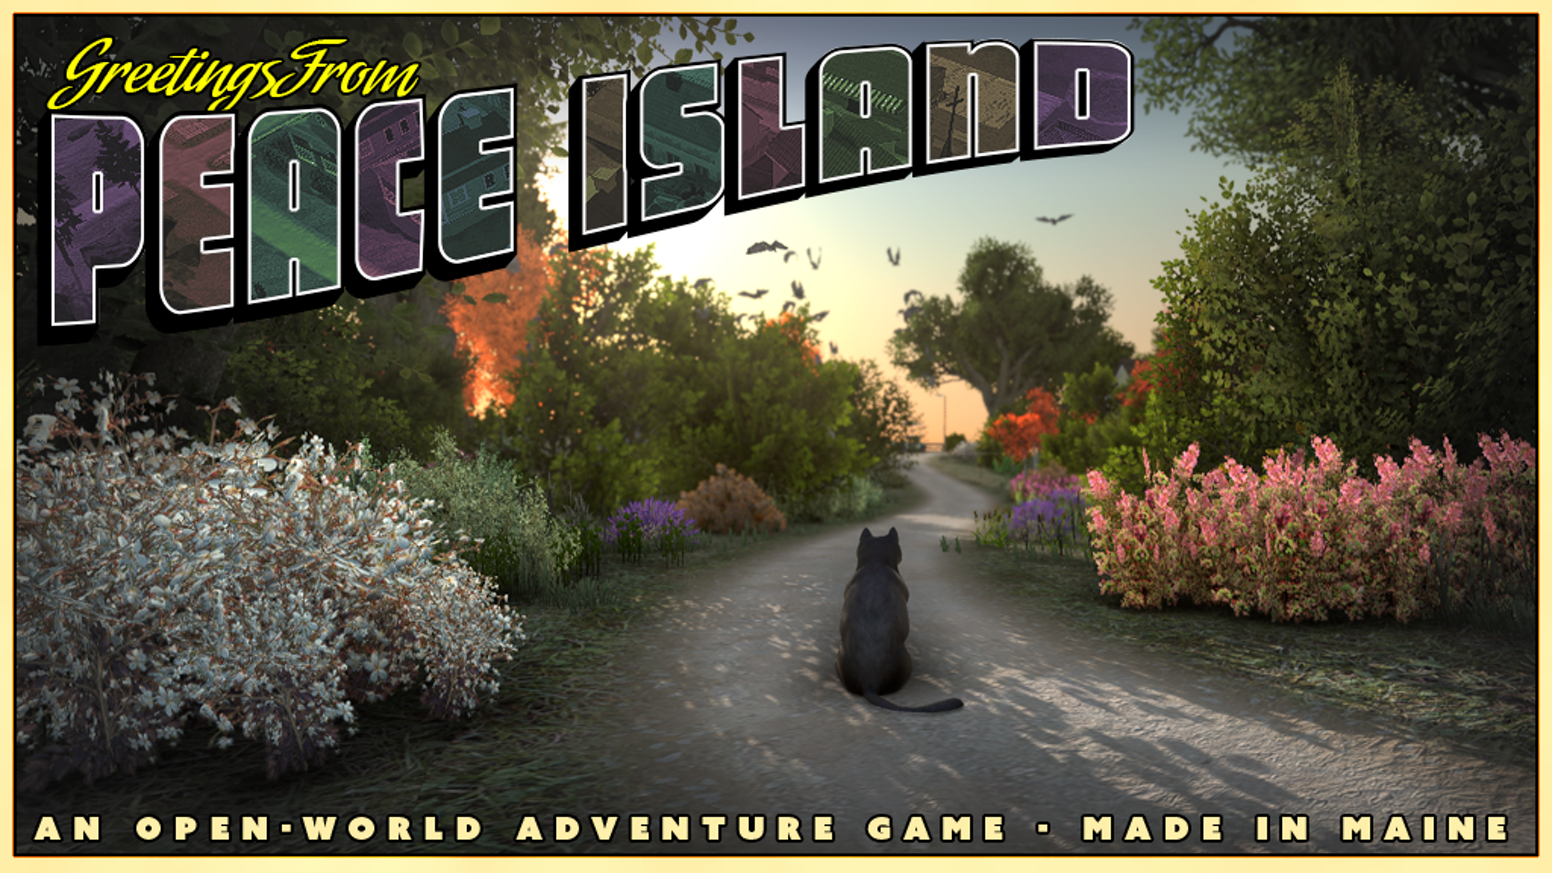 This Kickstarter has expired, but if you want to support the Peace Island project and gain access to Alphas and Dev News, check out our Patreon:  Patreon.com/PeaceIsland